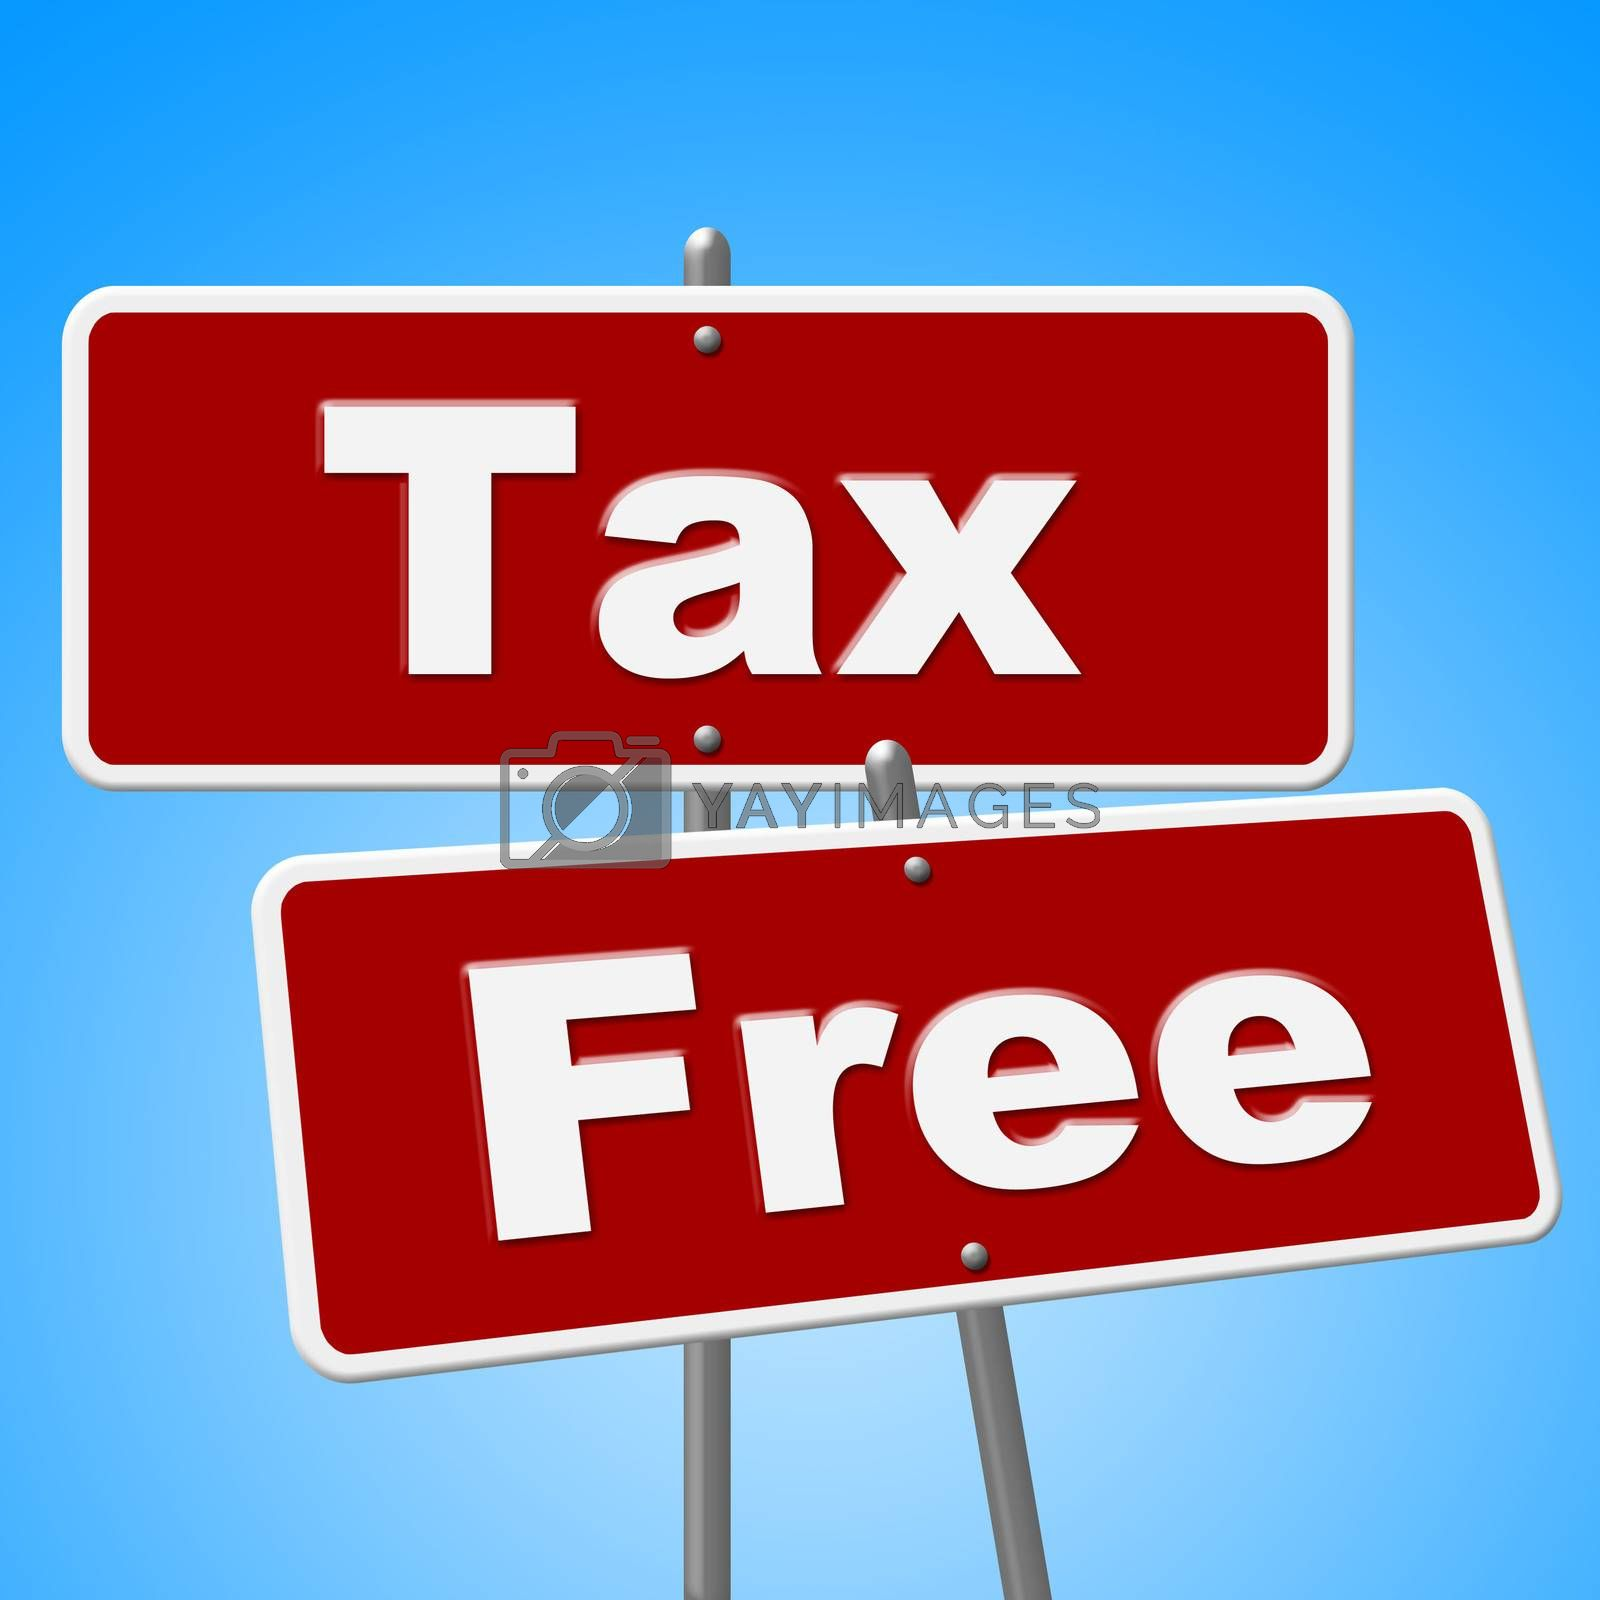 Tax Free Signs Represents With Our Compliments And Duties by stuartmiles